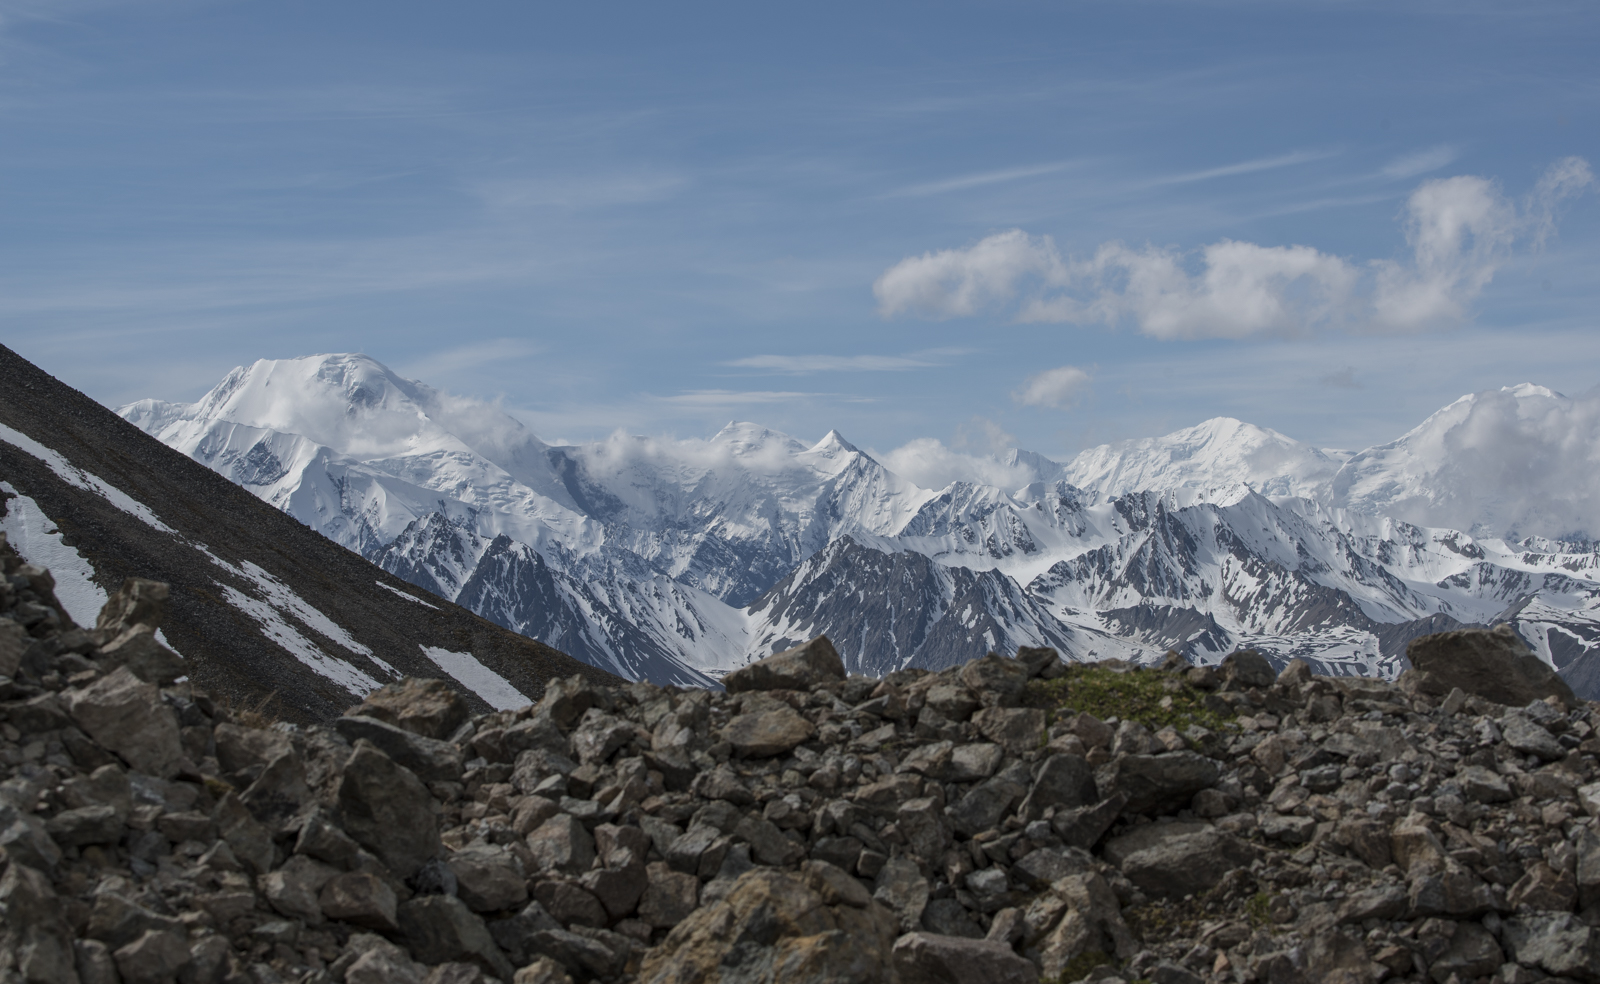 A view of the Alaska Range from Mount Eielson.